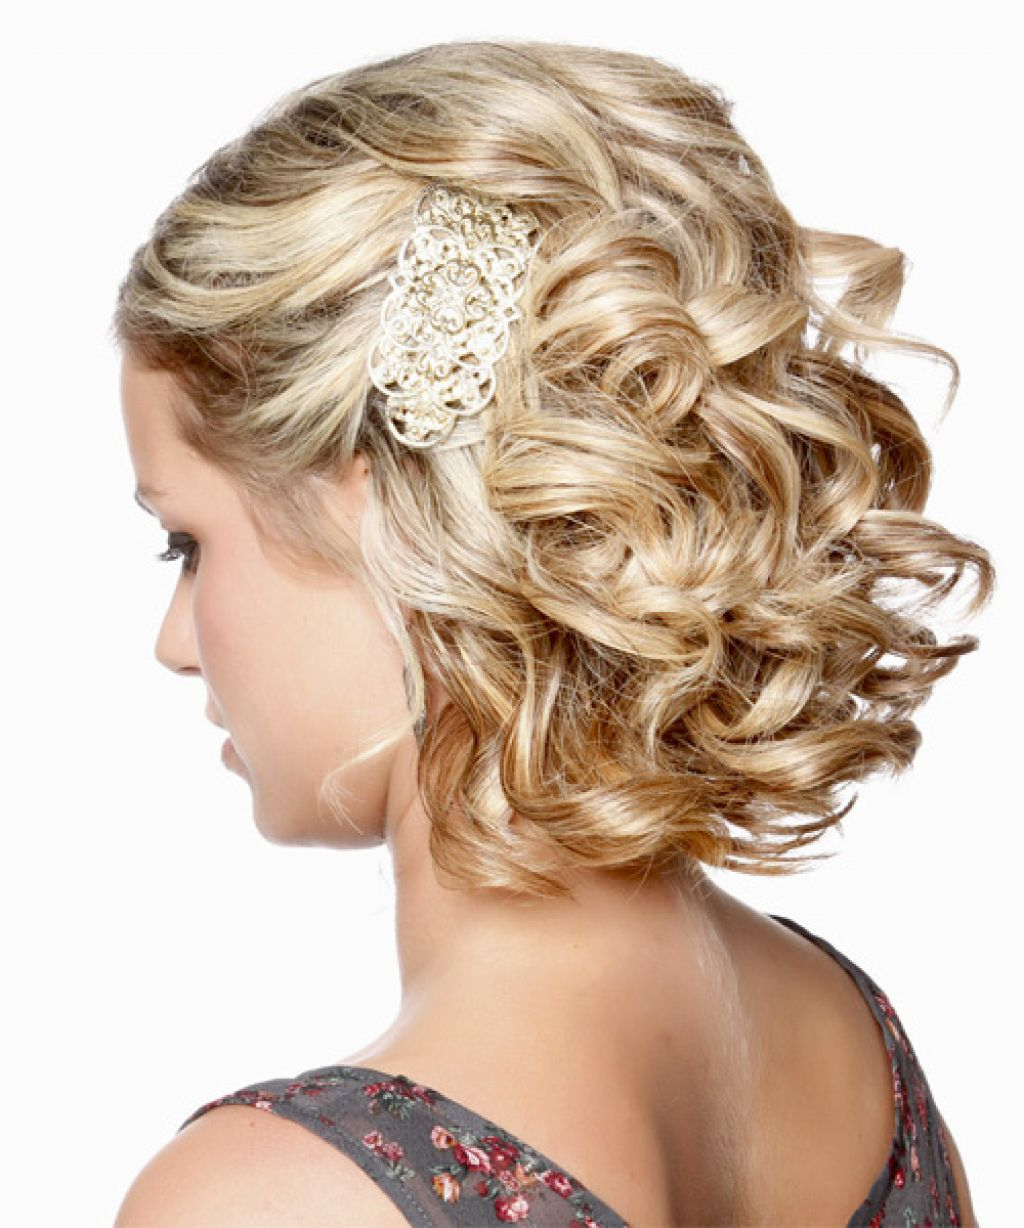 Most Popular Curly Medium Hairstyles For Prom For Curly Prom Hairstyles For Medium Hair Curly Prom Hairstyle For (View 11 of 20)